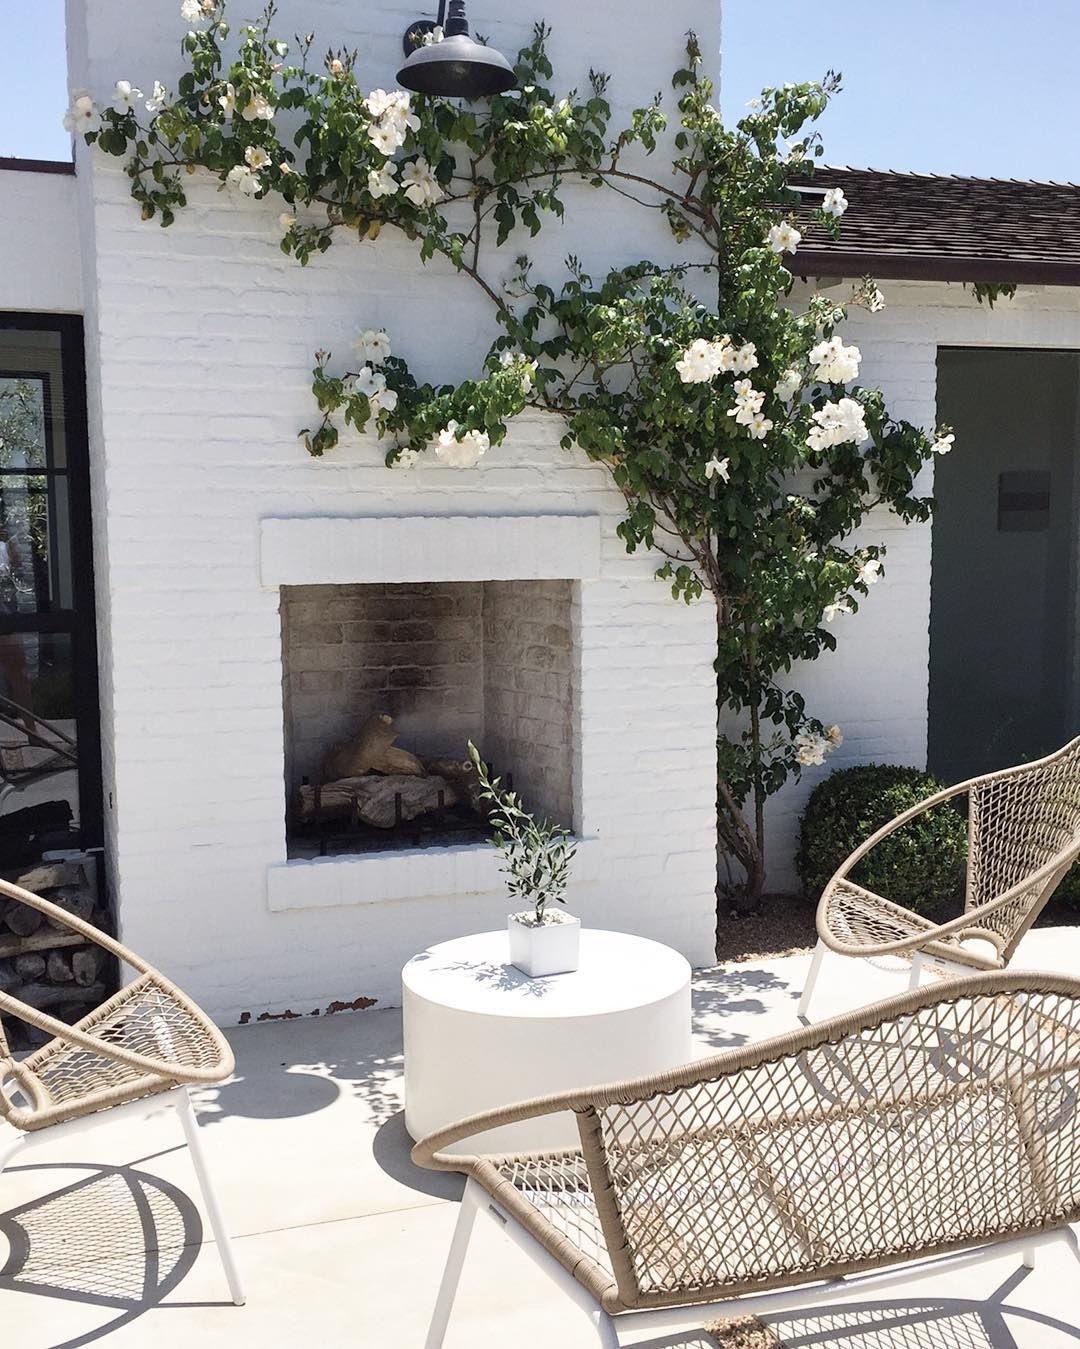 Outdoor Fireplace With White Painted Bricks Love The Boho Accents